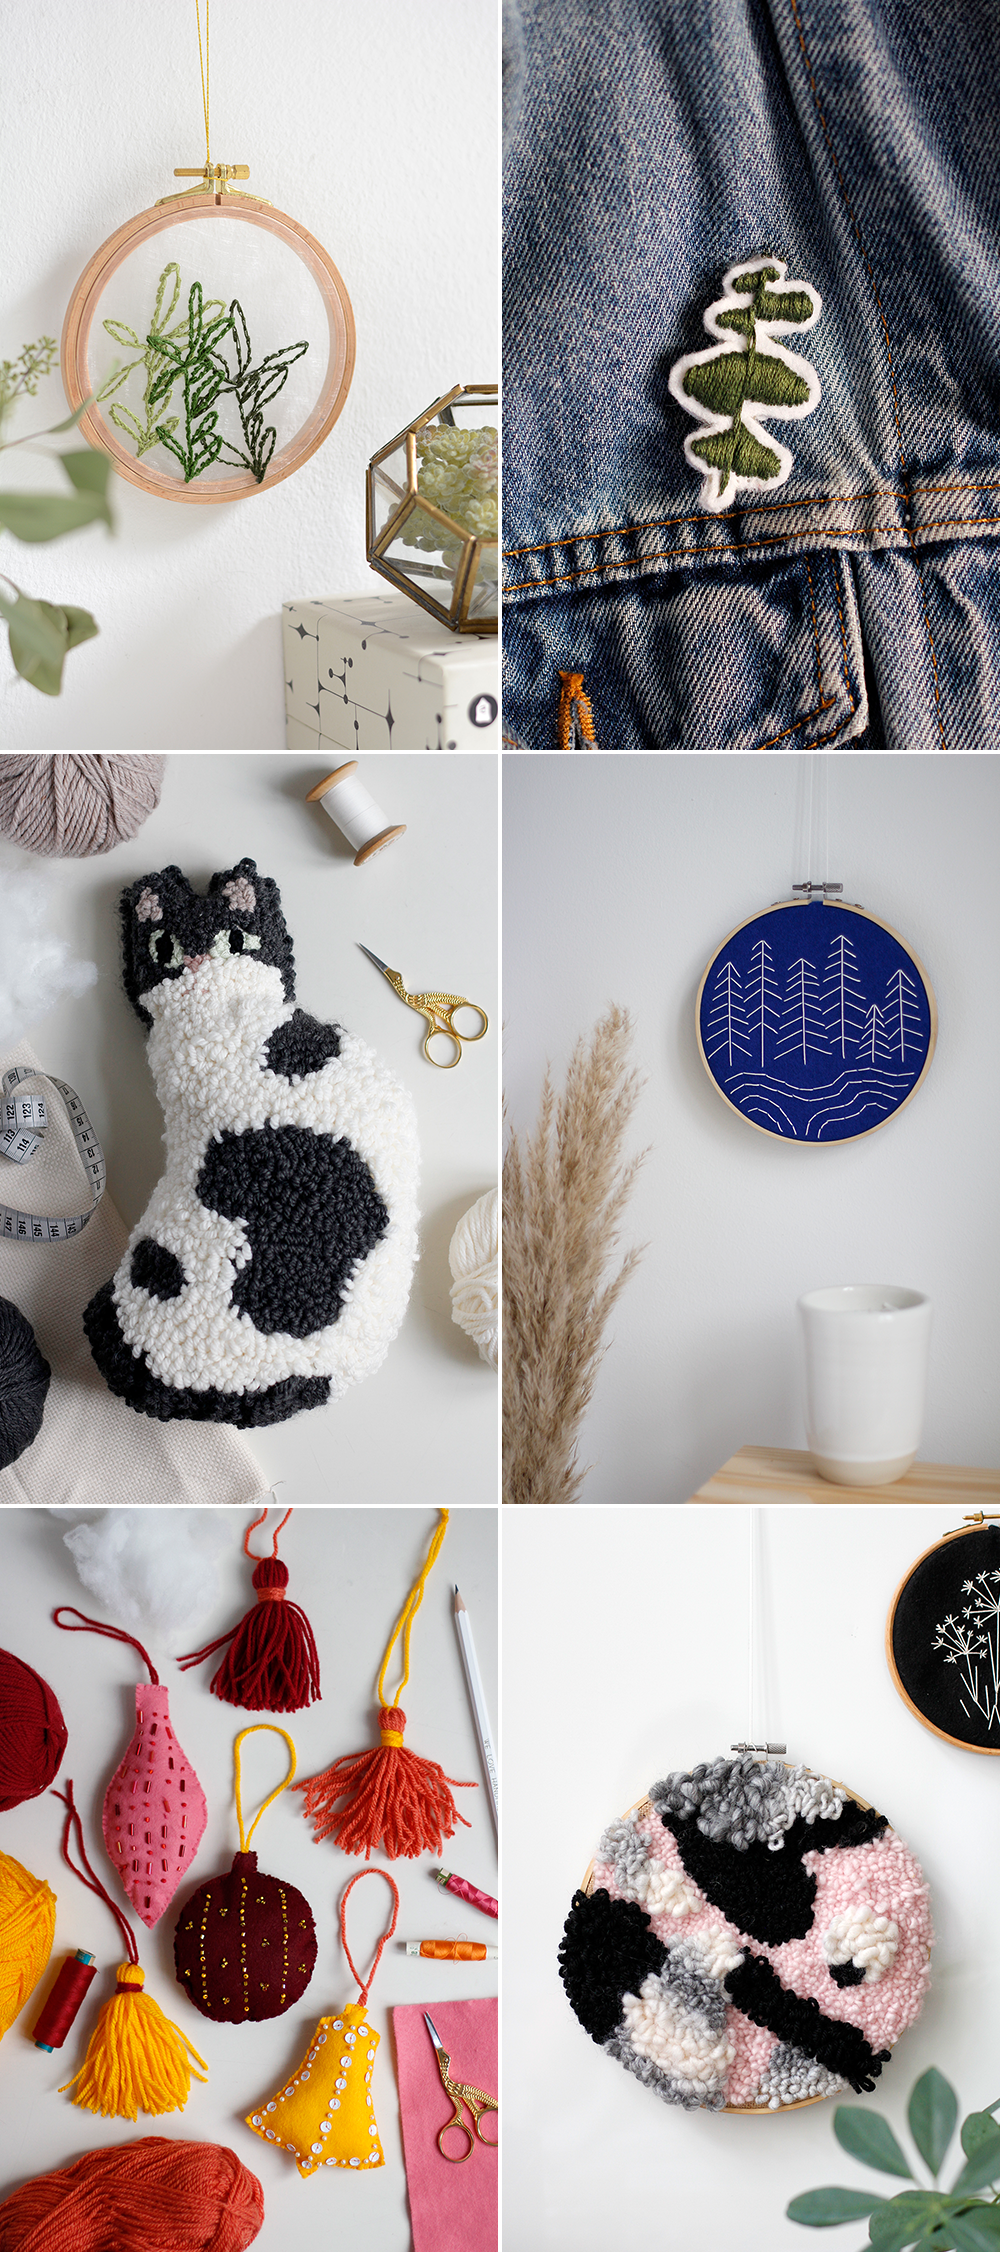 we love Inspiration: Unsere liebsten Stick-DIYs | we love handmade